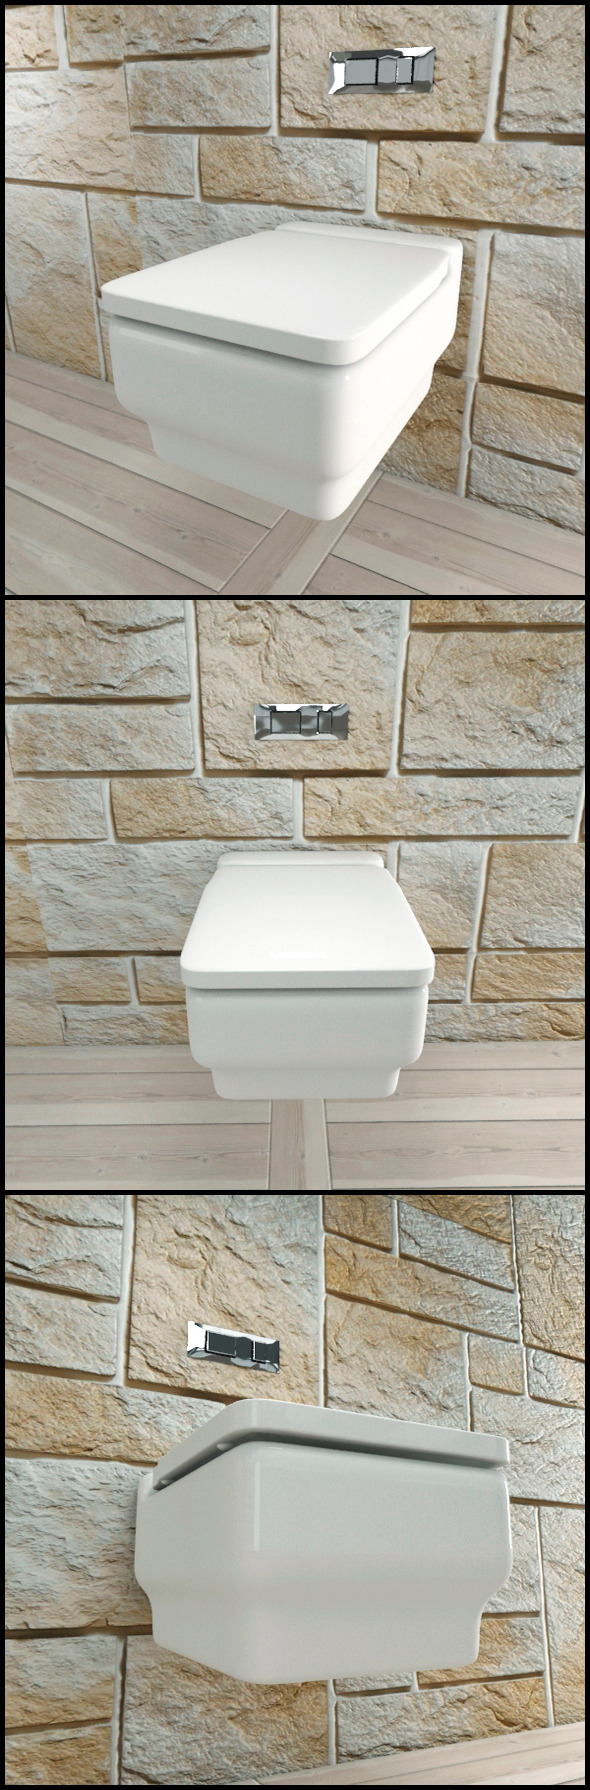 White Ceramic Toilet with Chrome Flush Plate - 3DOcean Item for Sale